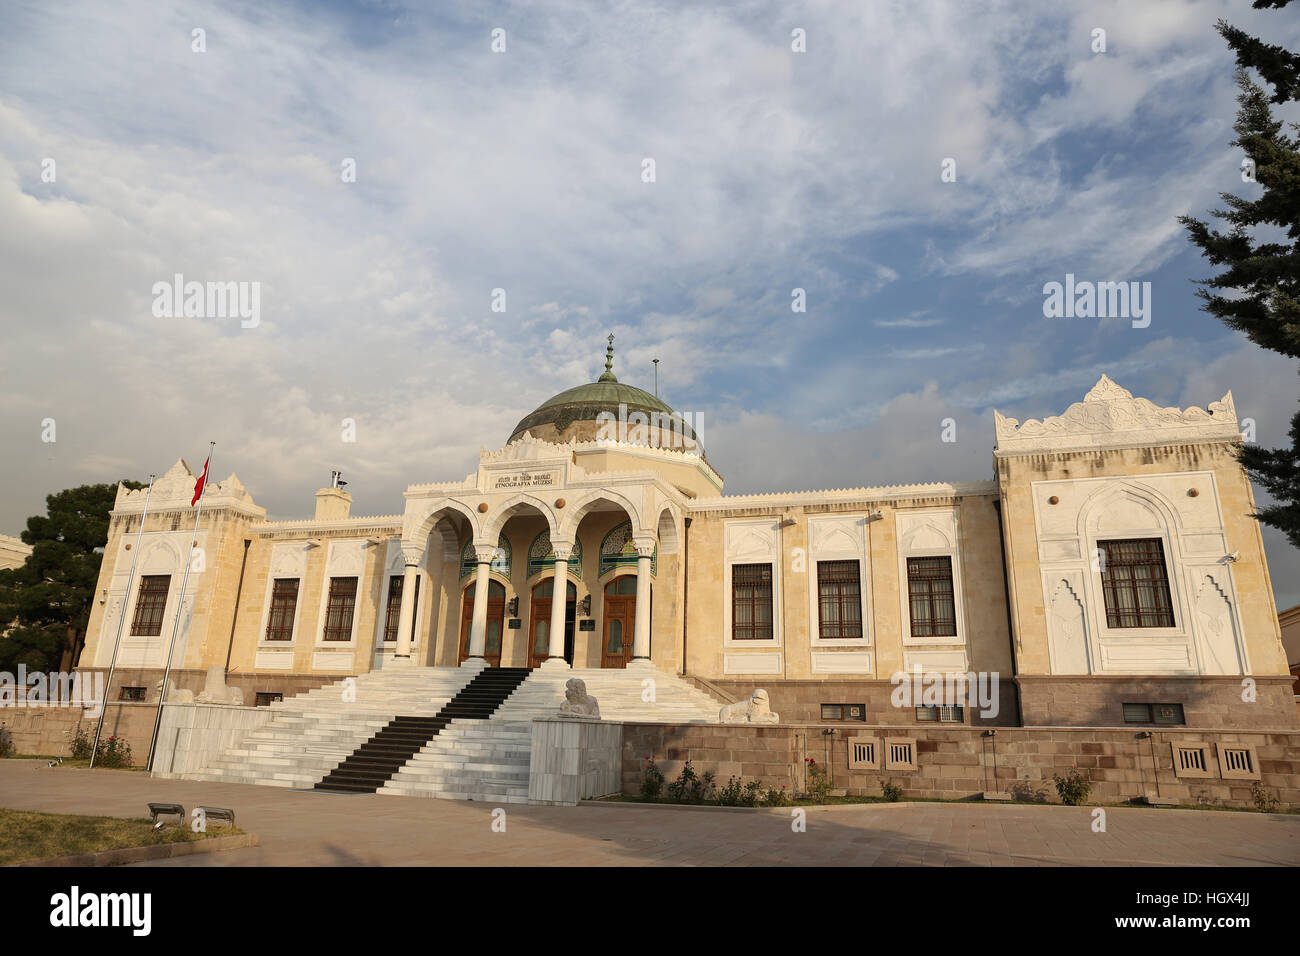 Ethnography Museum of Ankara Building in Turkey - Stock Image